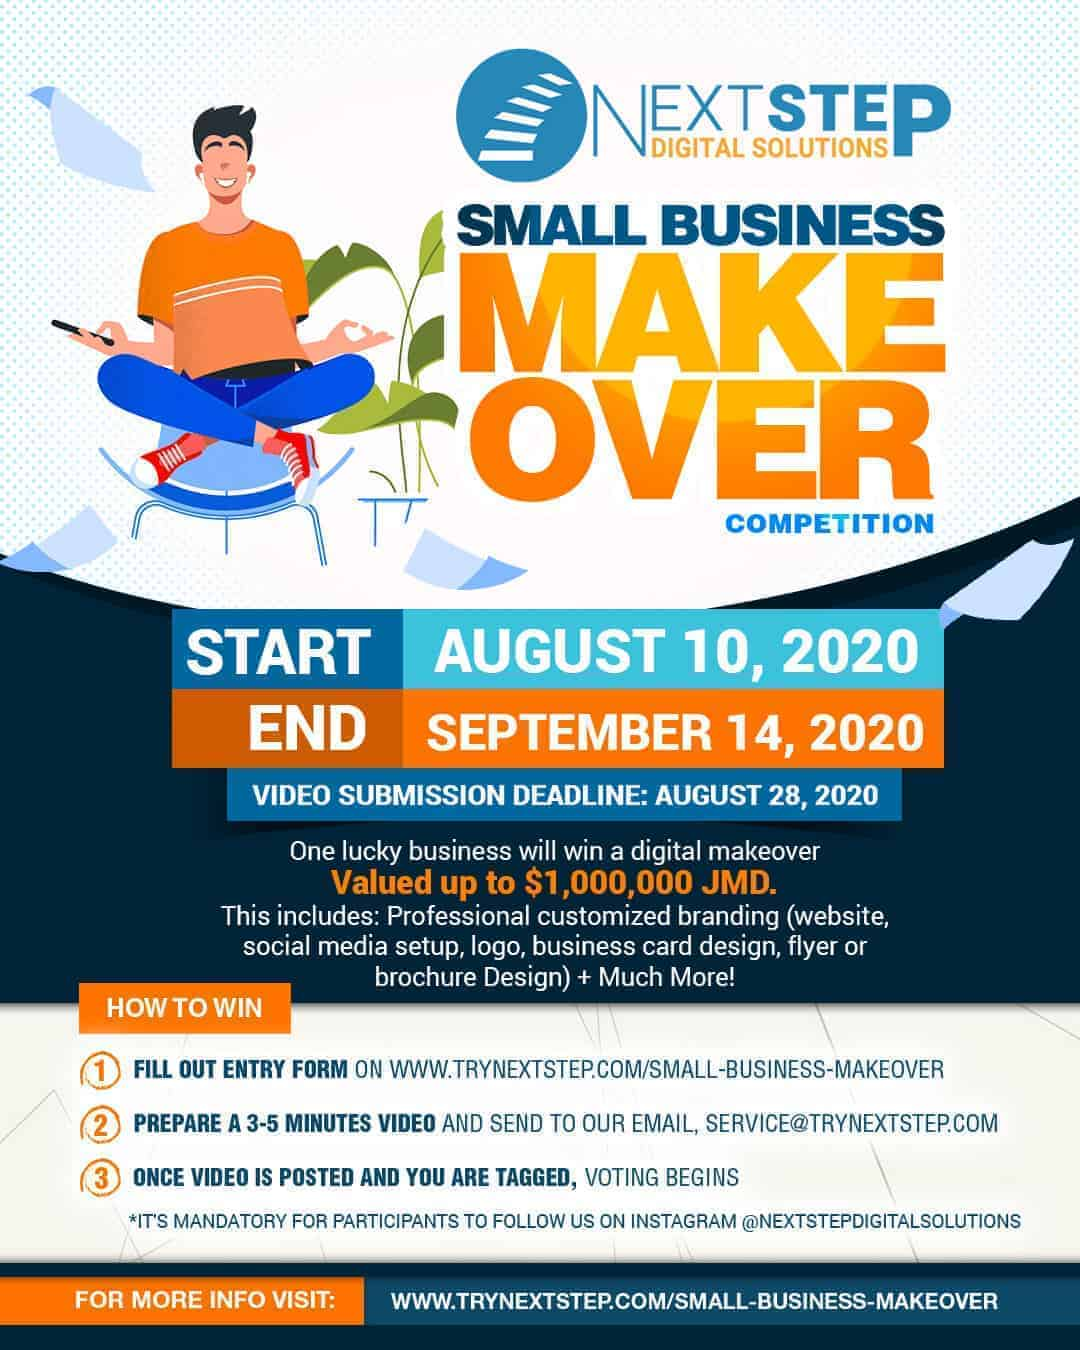 Next Step Small Business Makeover